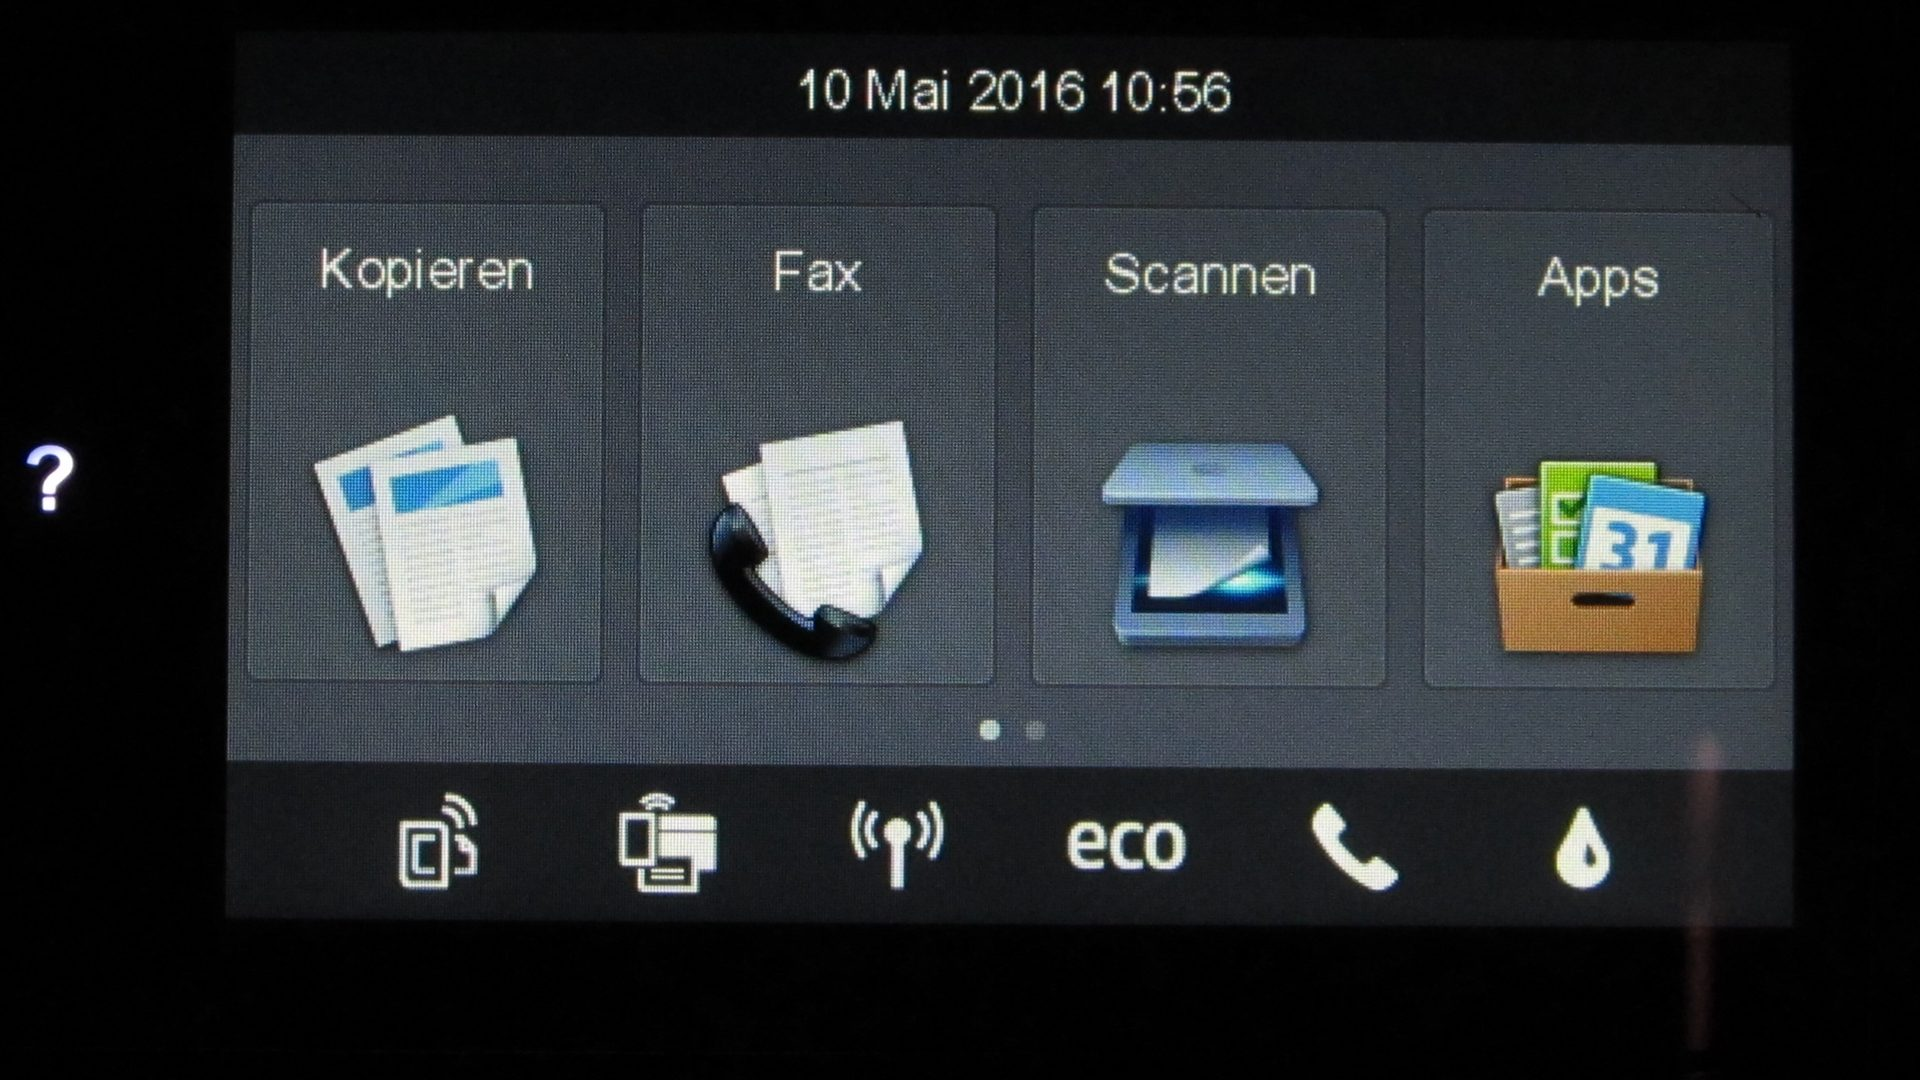 HP-Officejet-Pro-8620–Display-Hauptmenue